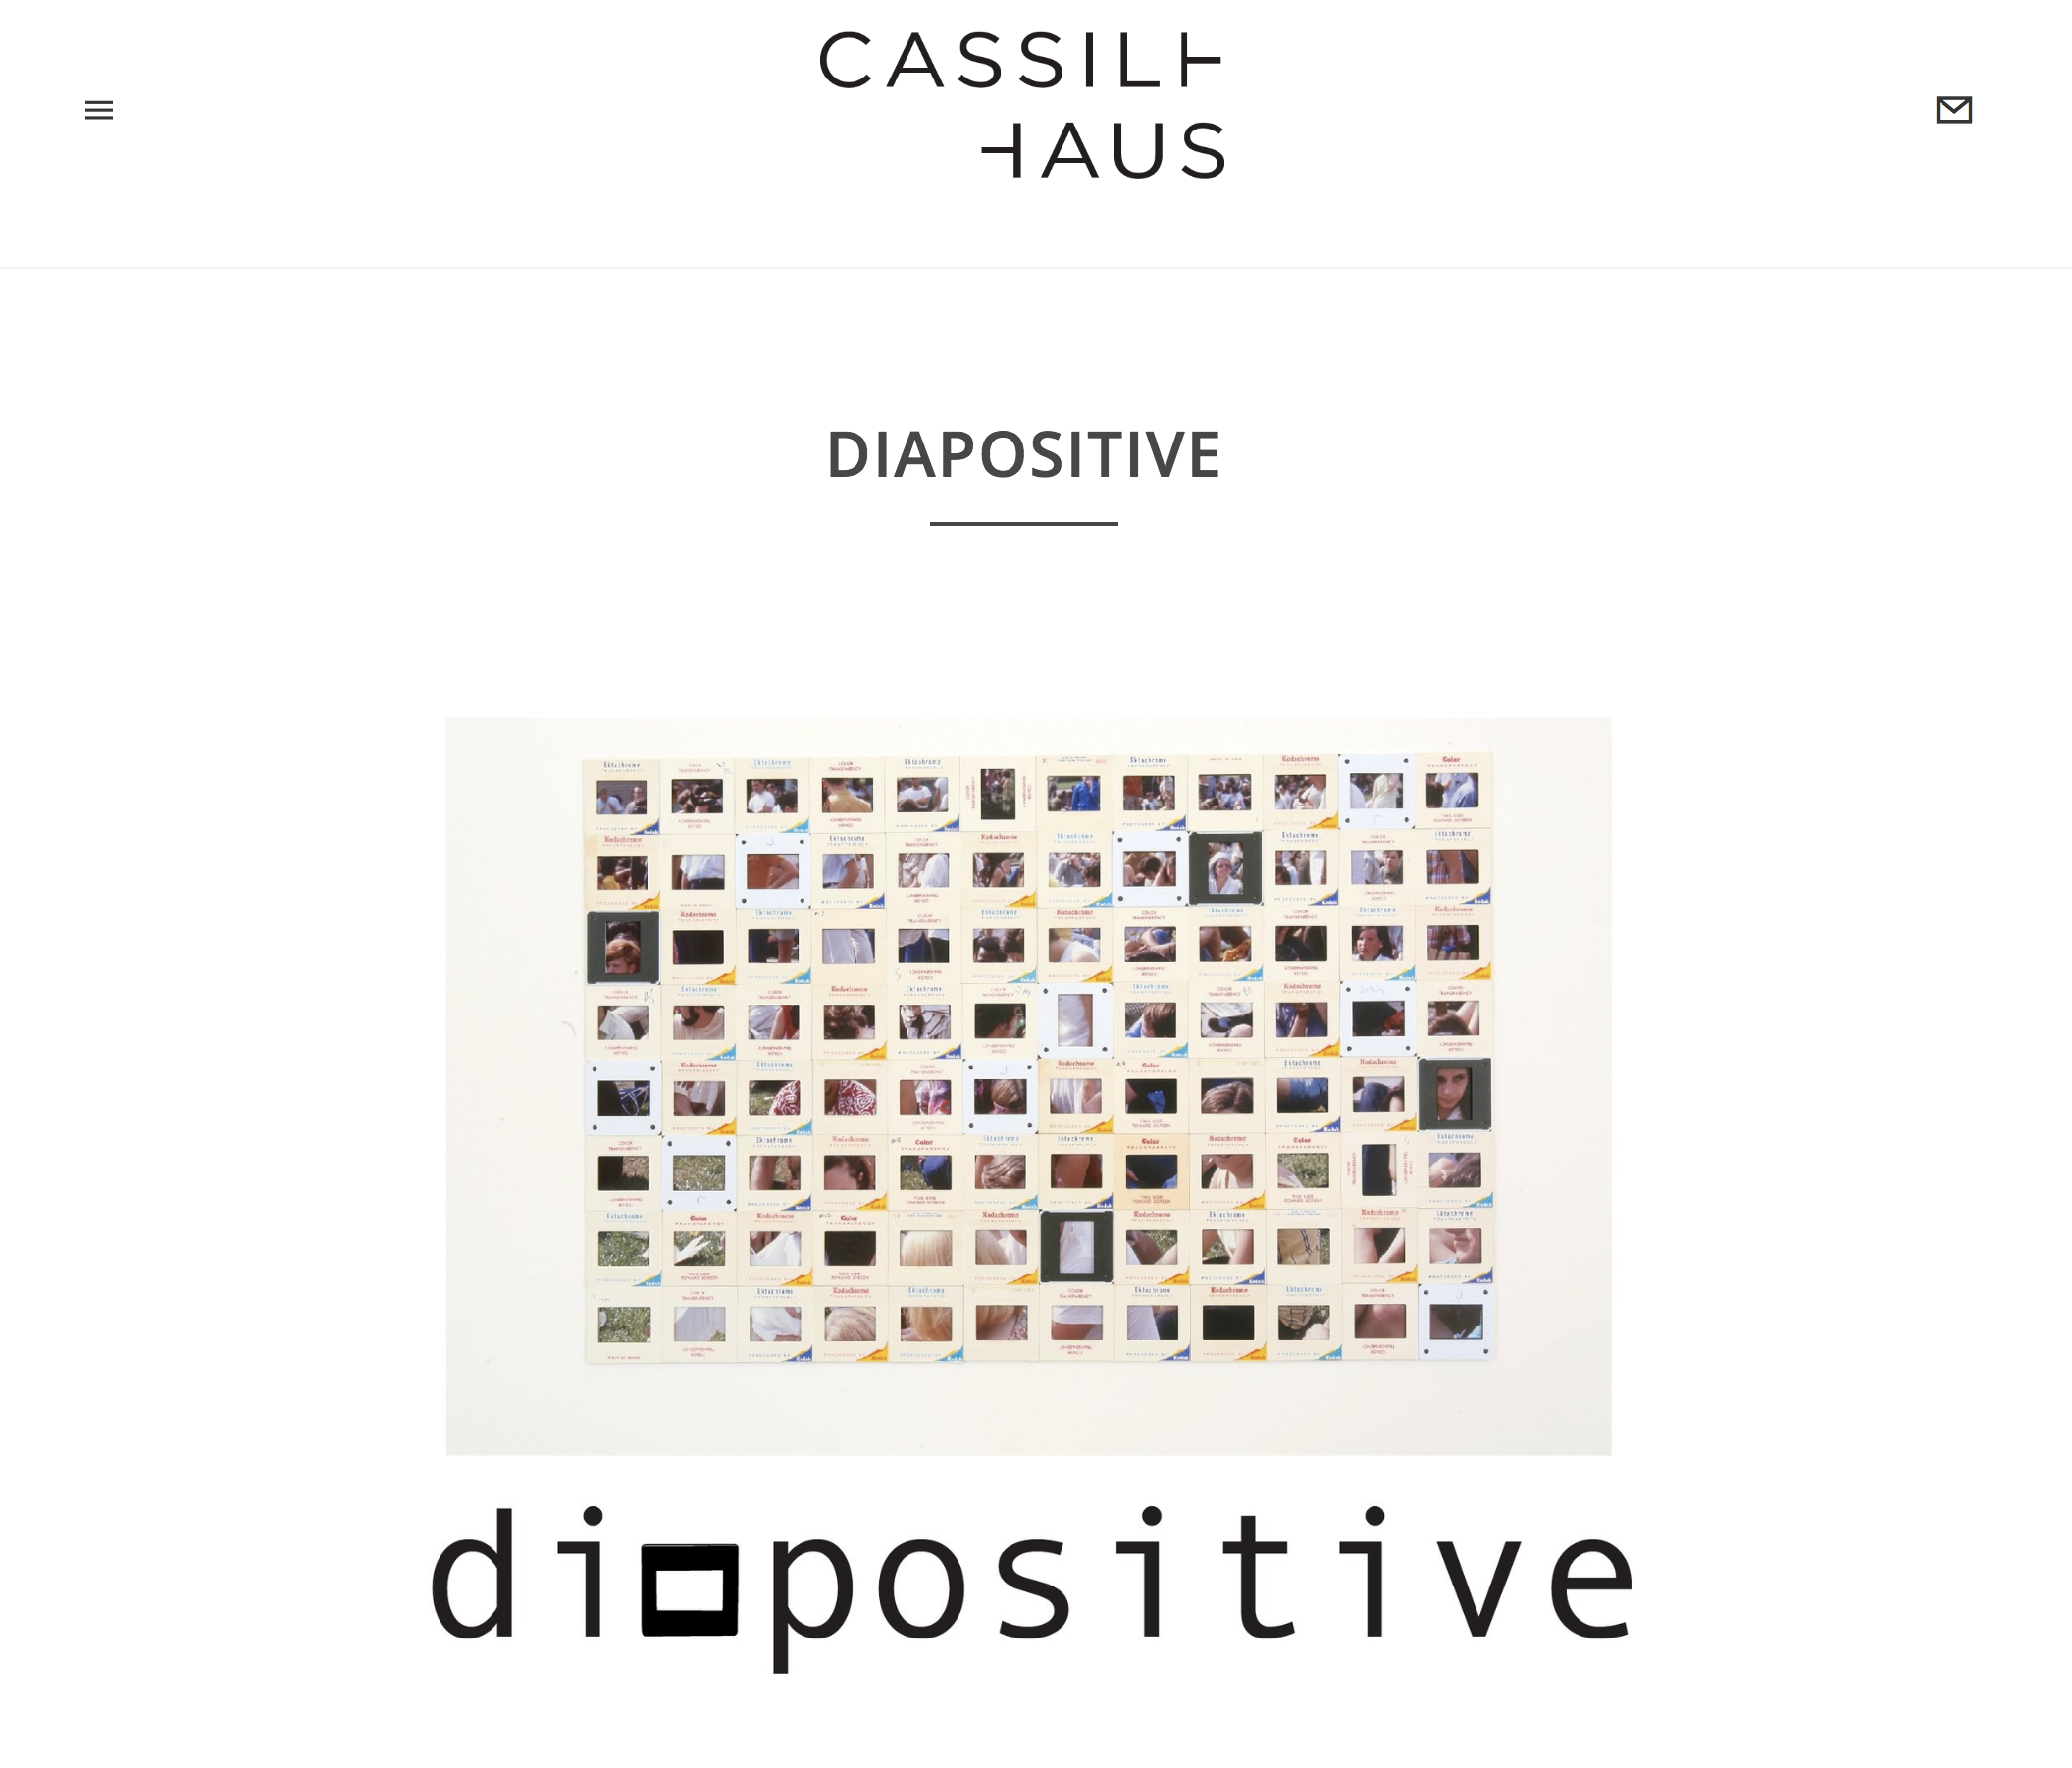 Several pieces from my Holder Series are currently on display at  Cassilhaus  as part of the group exhibition Diapositive. The exhibition will be up during the  Click! Photography Festival  and I will give a shared artist talk with the incredibly hardworking and prolific artist and friend of mine,  Amy Herman  on October 17th, 2018. Information to RSVP for the event is listed both on the  Click!  and Cassilhaus  website.